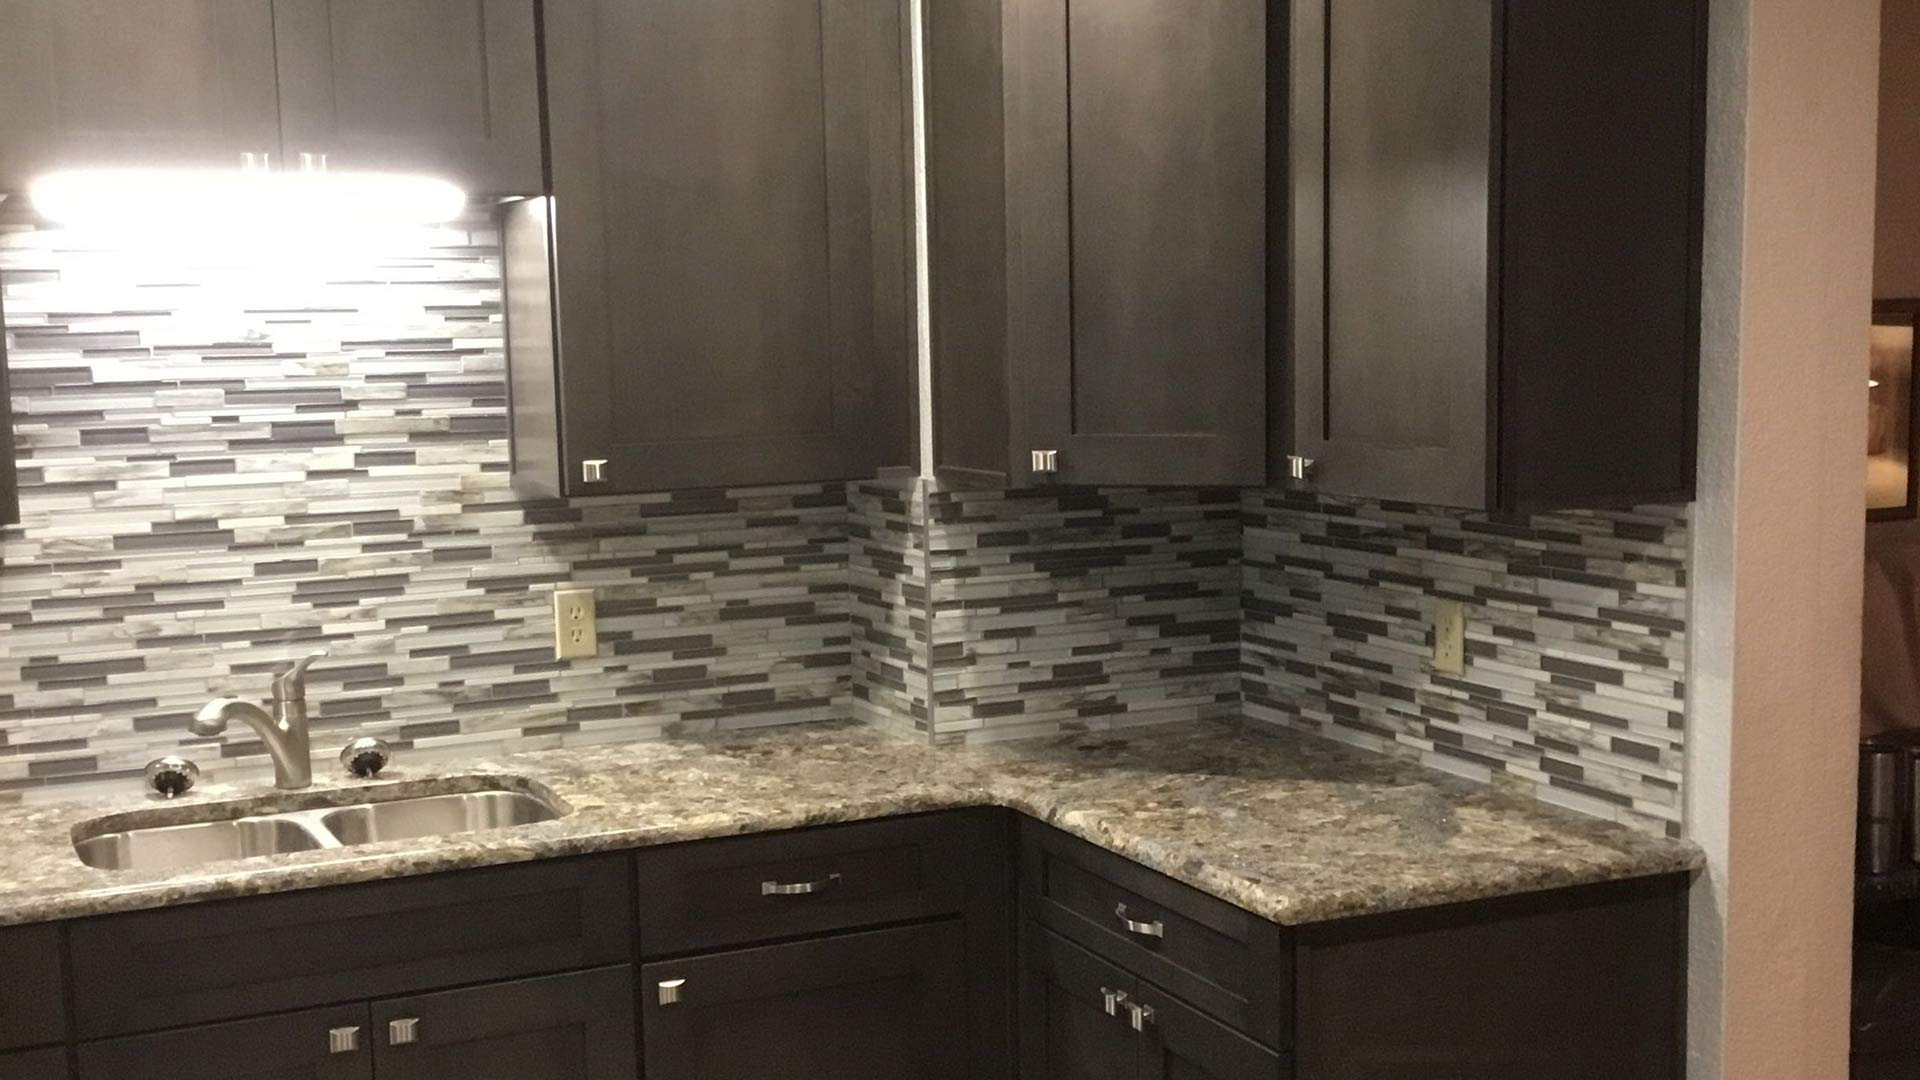 Example of a newly remodeled kitchen done by the professional team at True Builders for a homeowner in Haines City, FL.